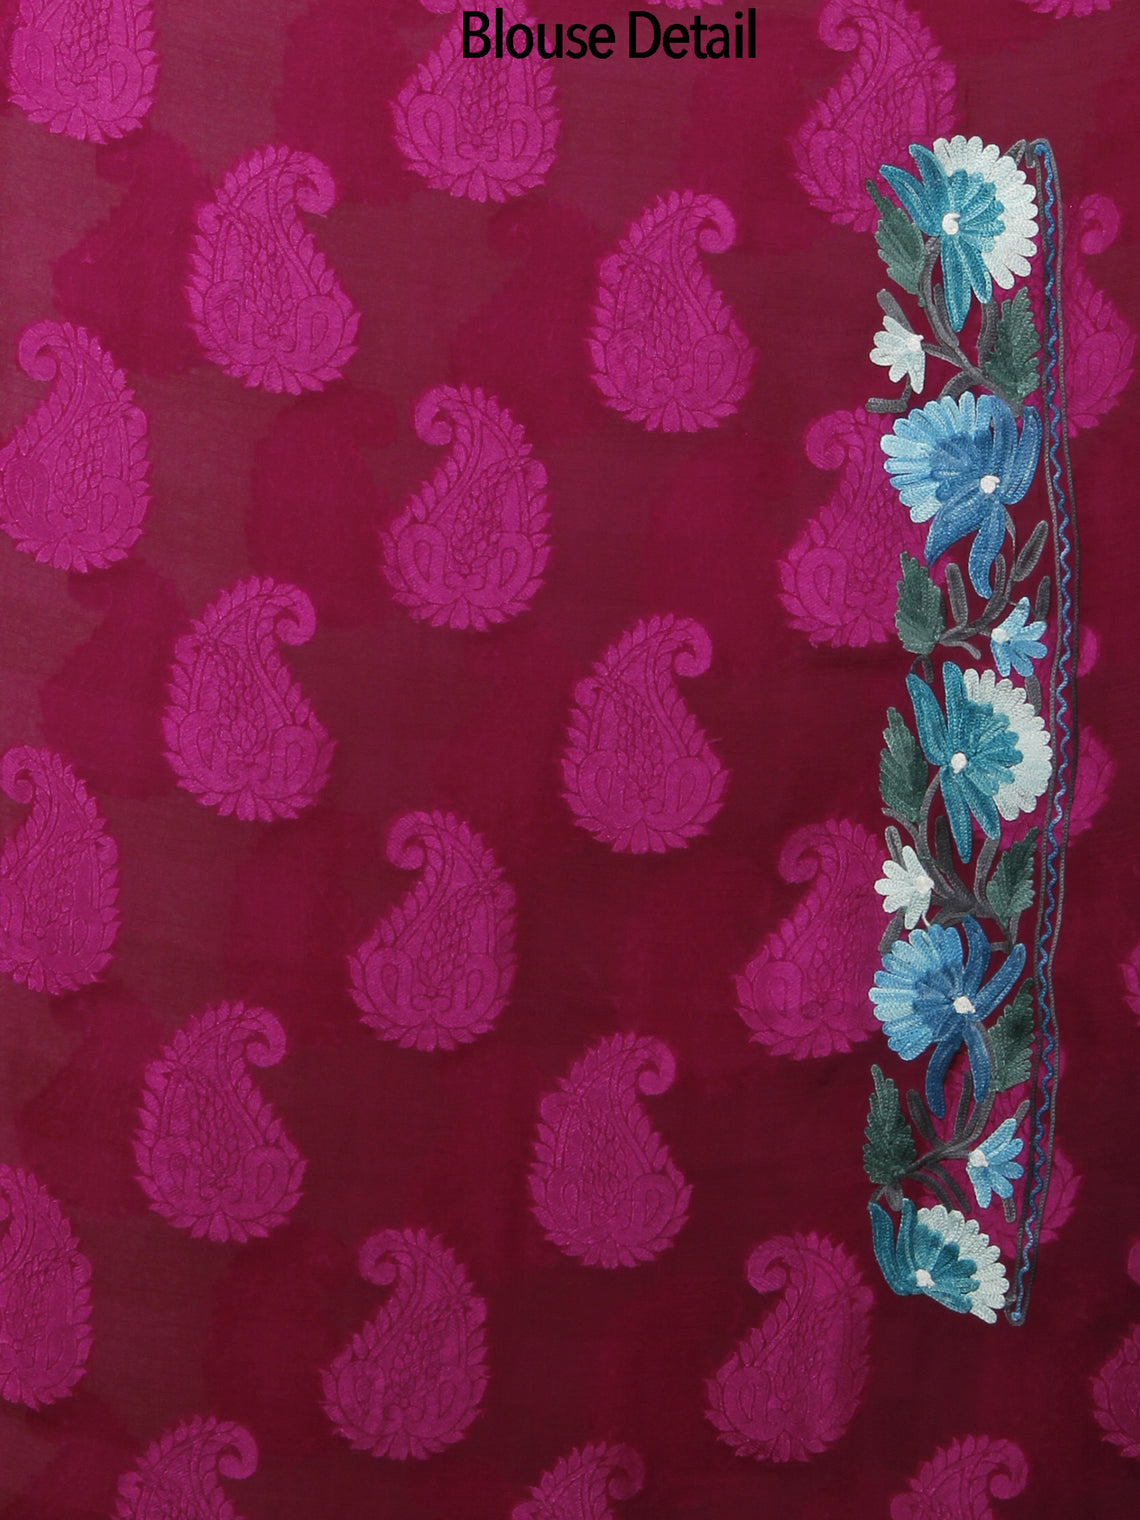 Maroon Purple Teal Blue Ivory Aari Embroidered Chiffon Saree With Paisley Self From Kashmir  - S031702143